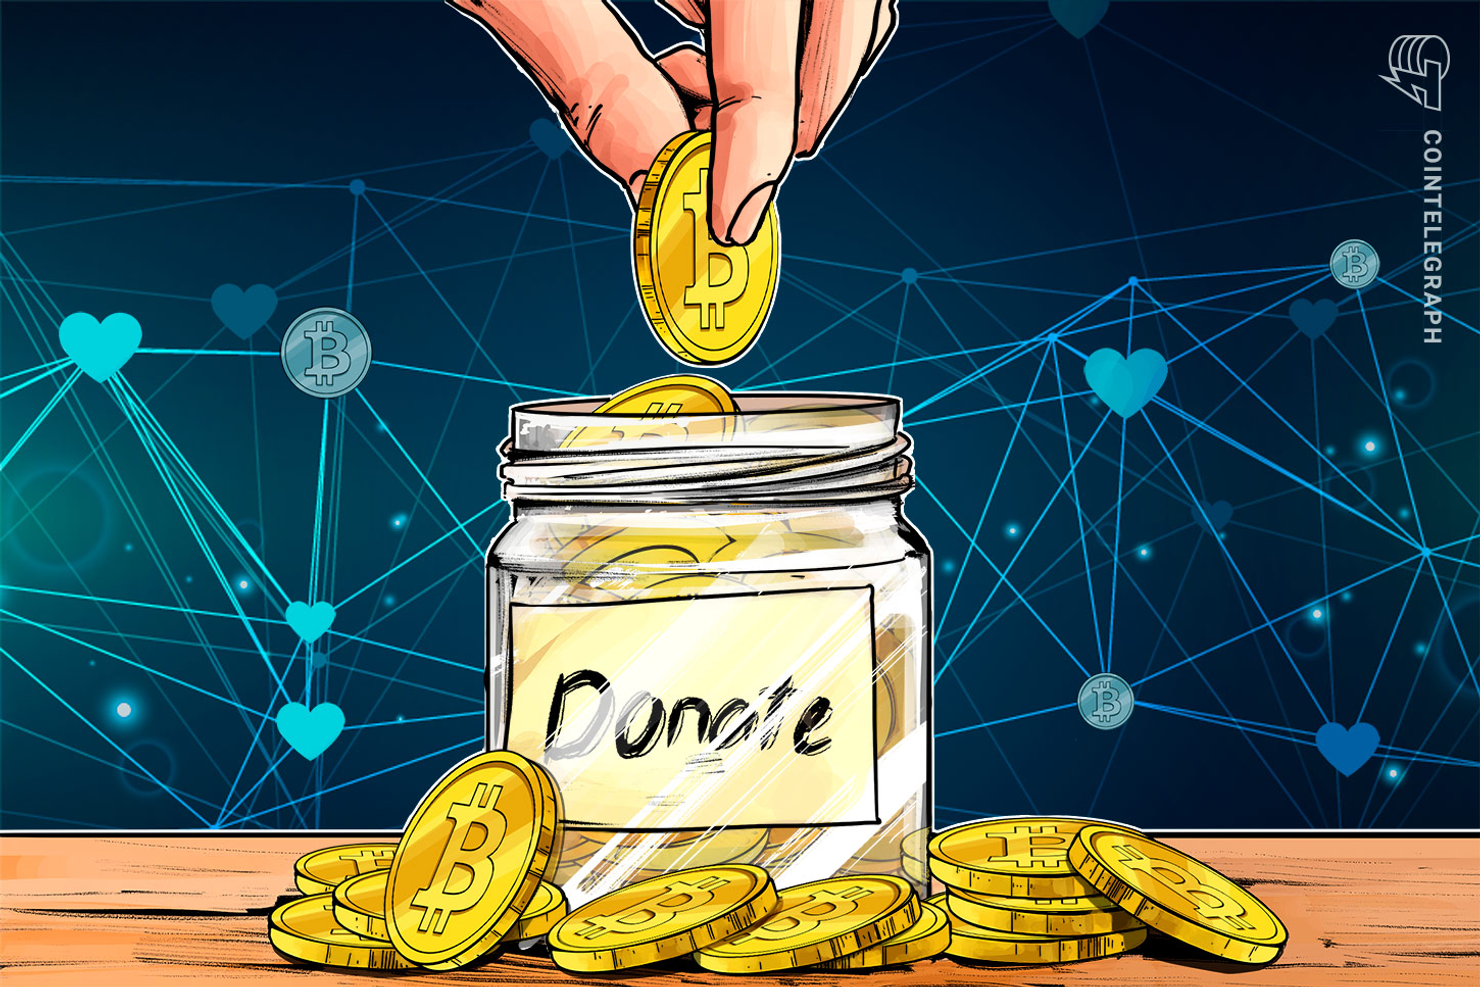 'Not Very Practical' — Critics Say Political Crypto Donations a Marketing Ploy